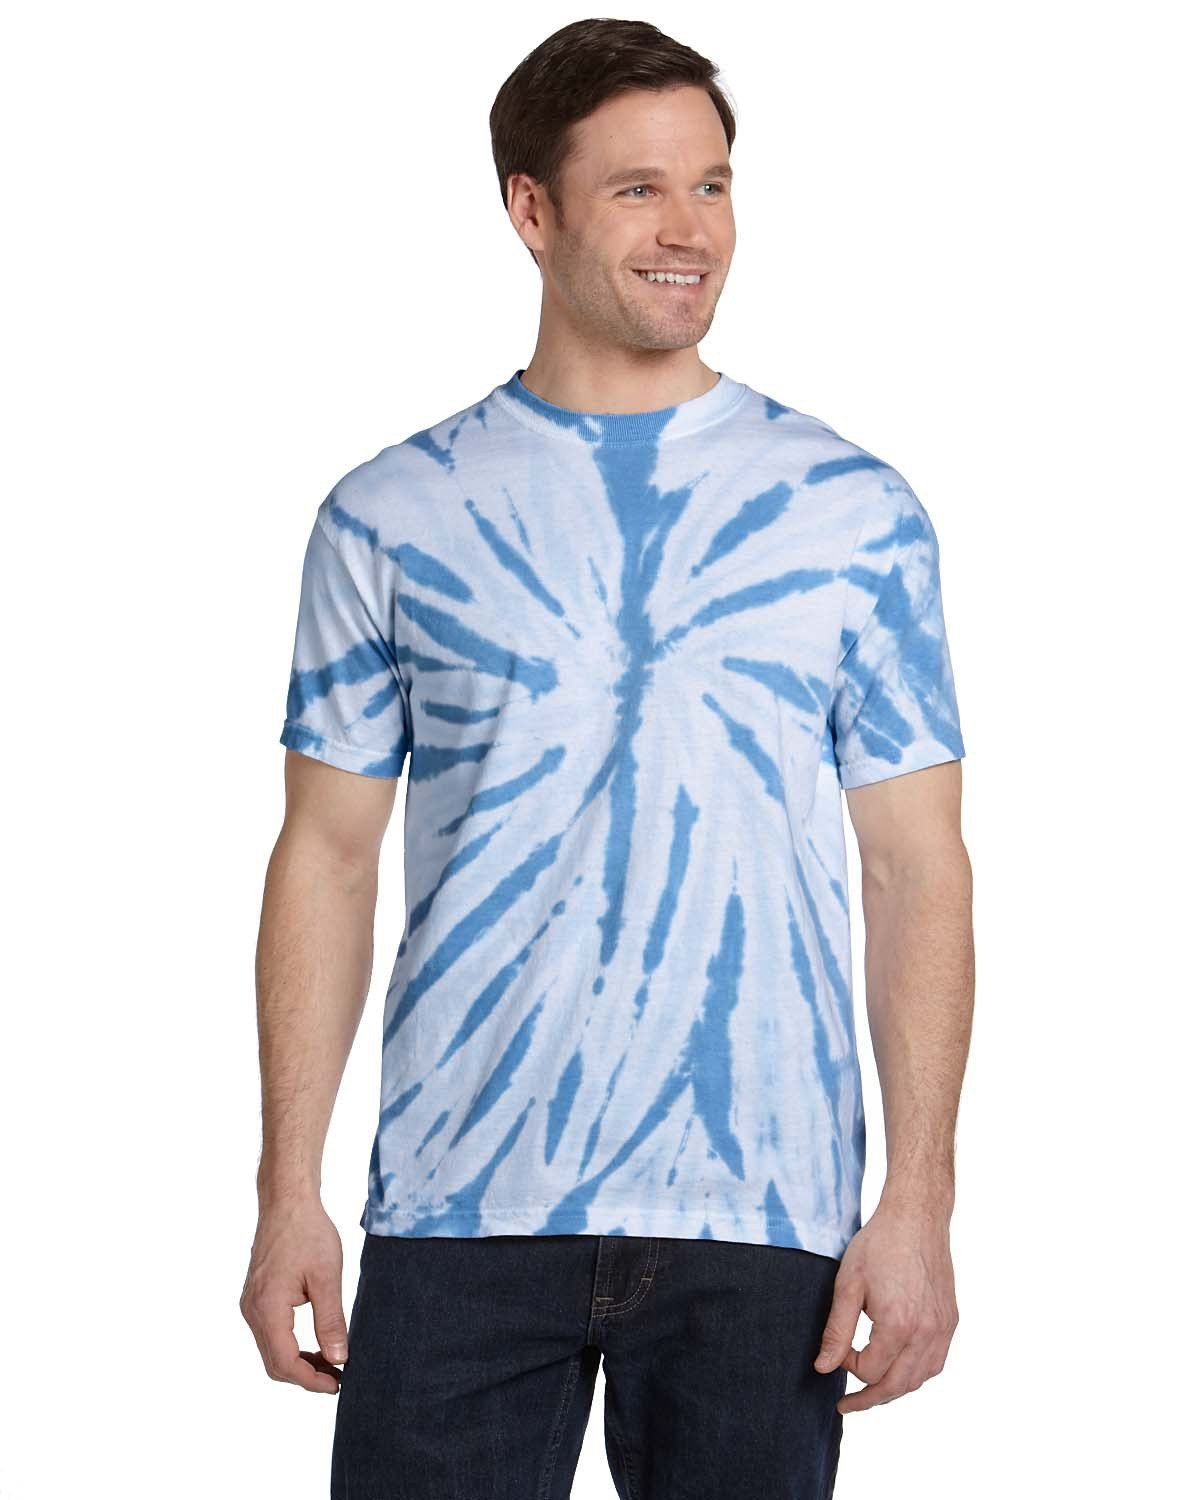 Tie-Dye Adult 100% Cotton Twist Tie-Dyed T-Shirt TWST CAROLIN BLU